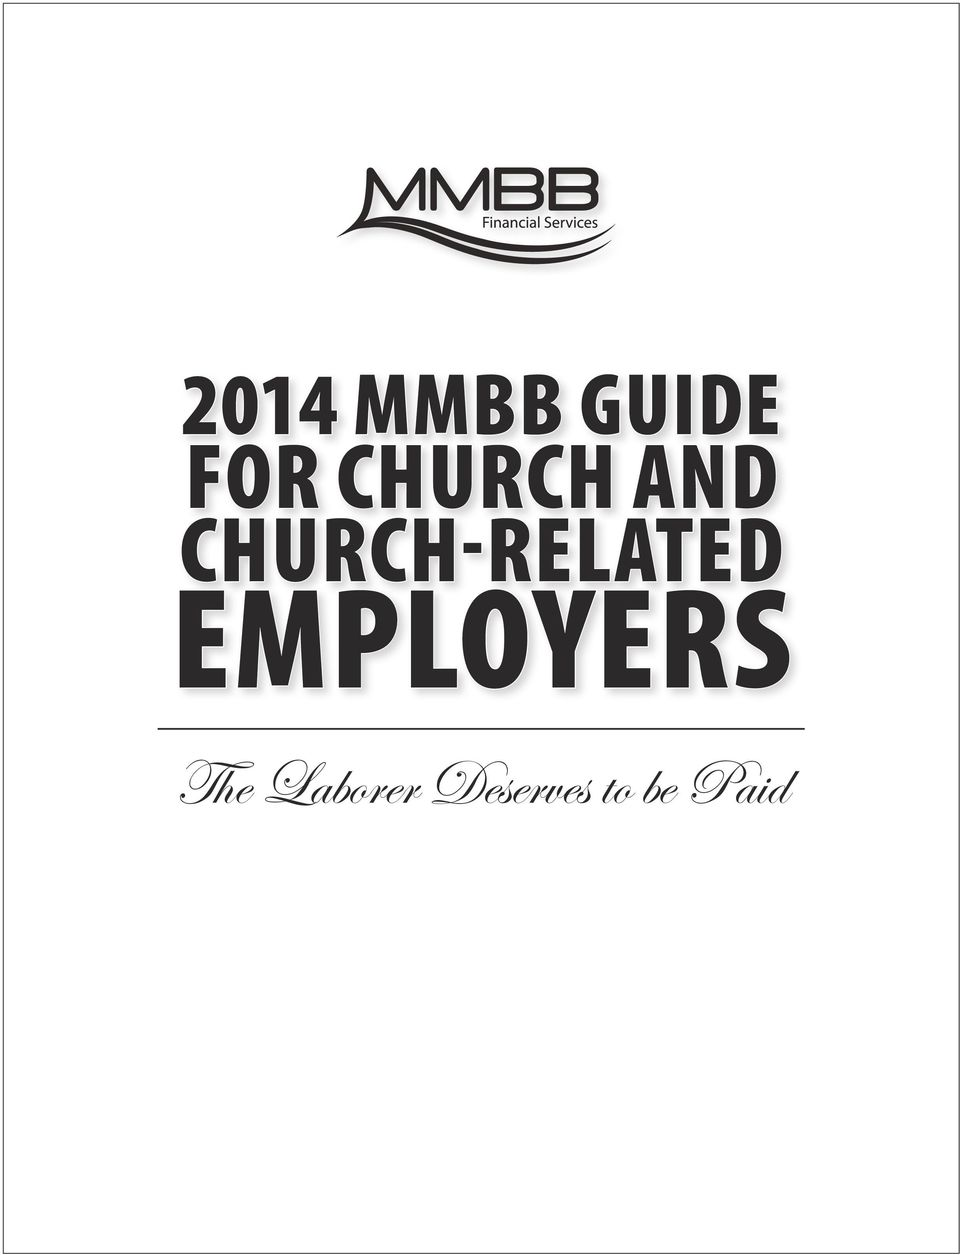 2014 MMBB GUIDE FOR CHURCH AND CHURCH-RELATED EMPLOYERS